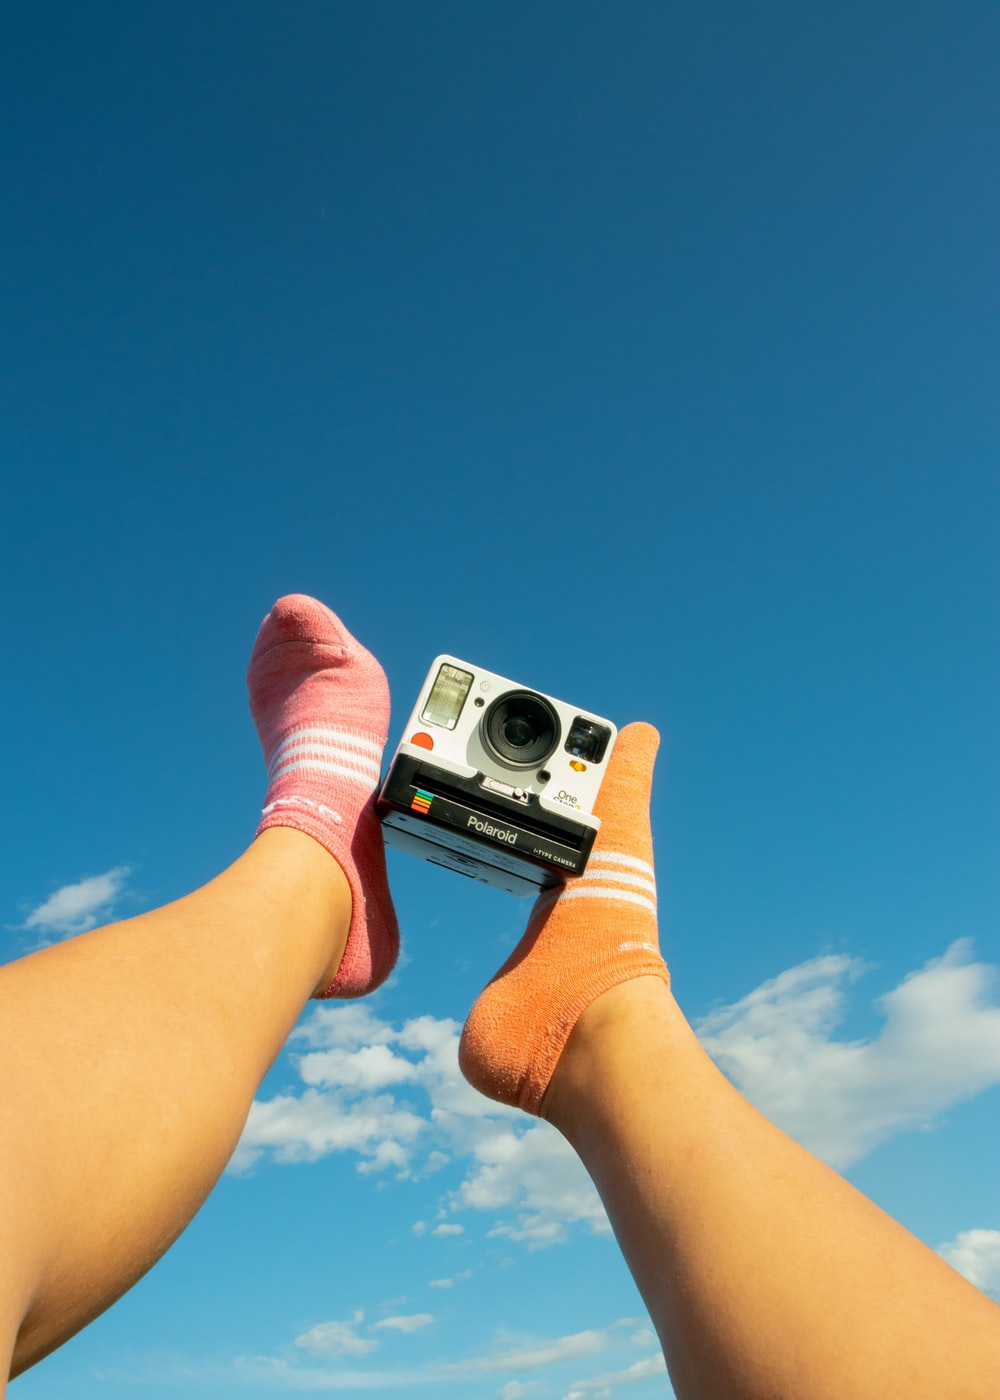 person holding white and black camera under blue sky during daytime